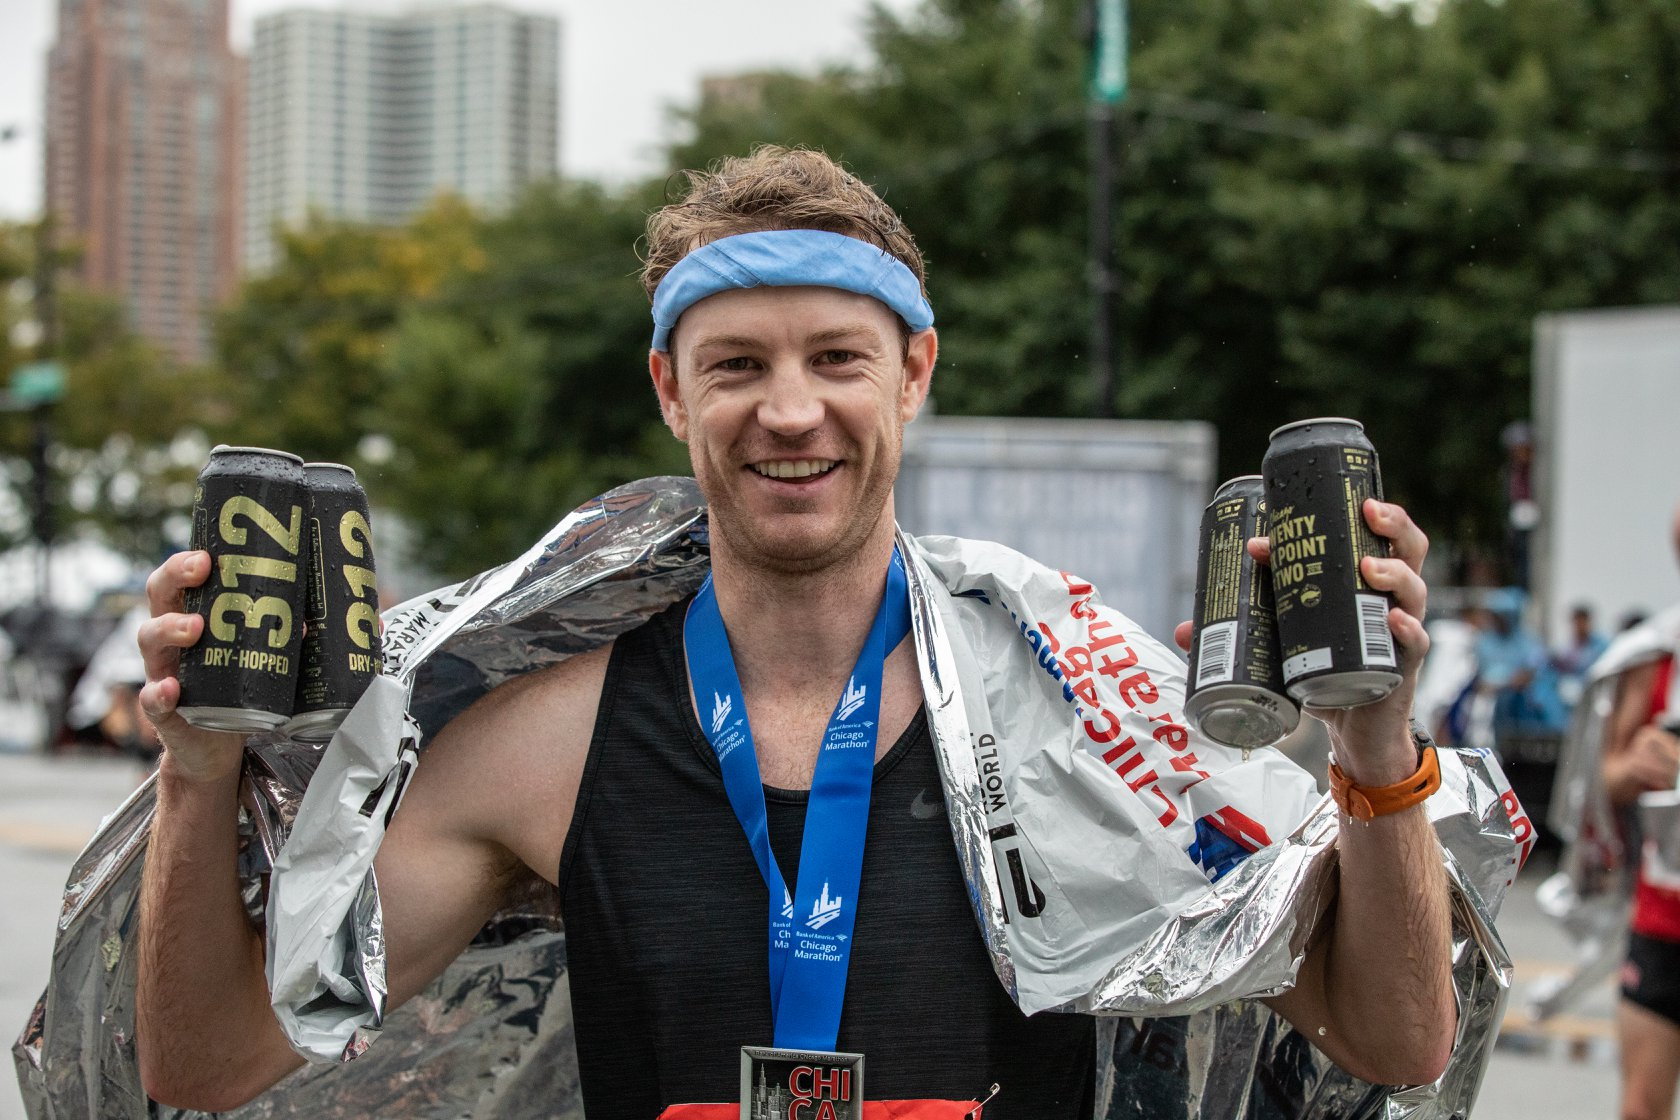 Drink to the Finish Line: The Ups and Downs of Beer and Marathons